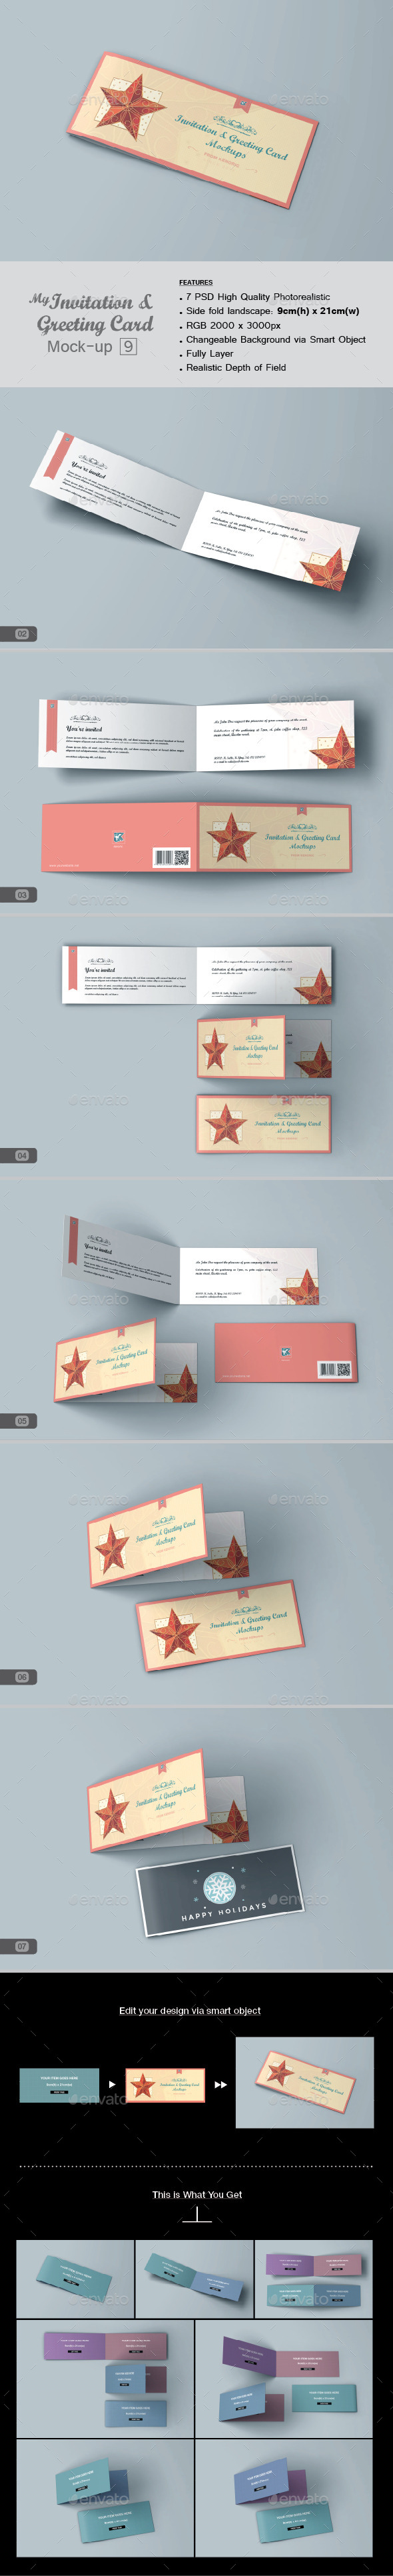 GraphicRiver myGreeting Card Mock-up v9 11645132